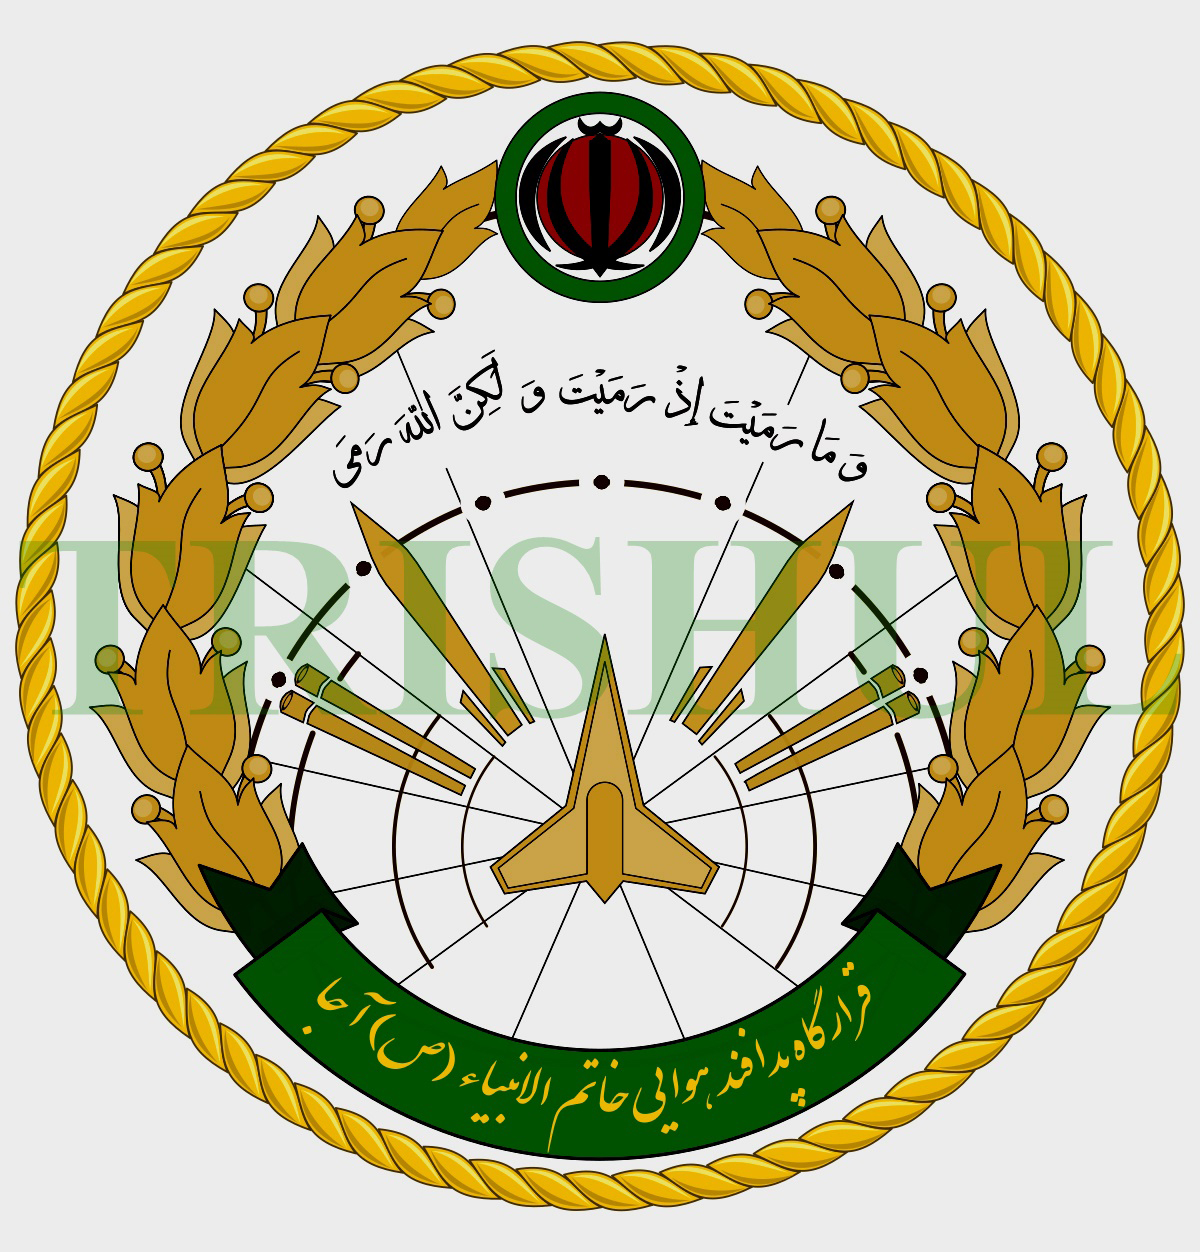 Trishul islamic republic of irans rma analysed 1 command control and communications of irans air defence networks s is split into three institutions buycottarizona Choice Image